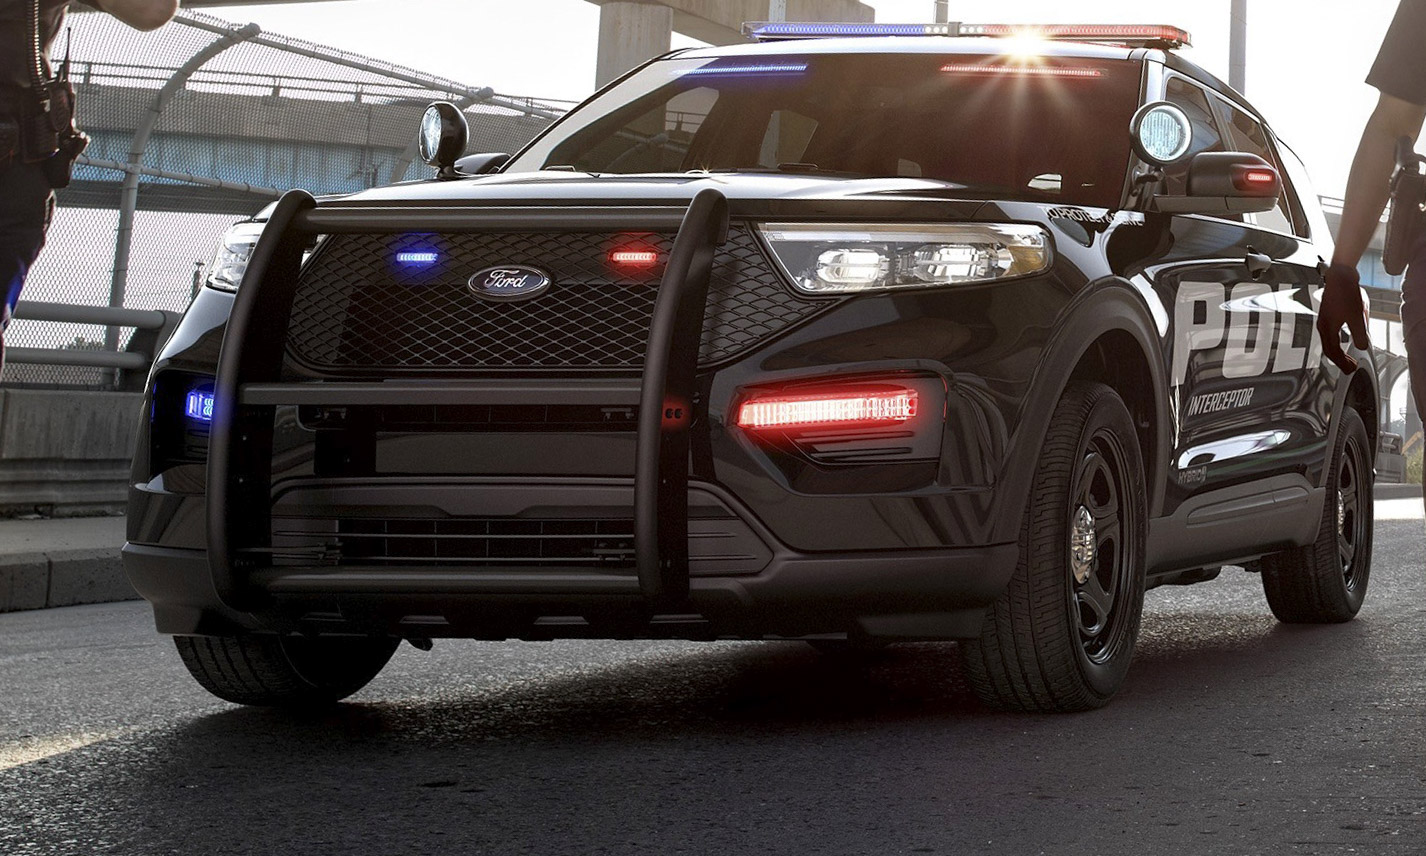 2020 Ford Police Interceptor Revealed Autonxt